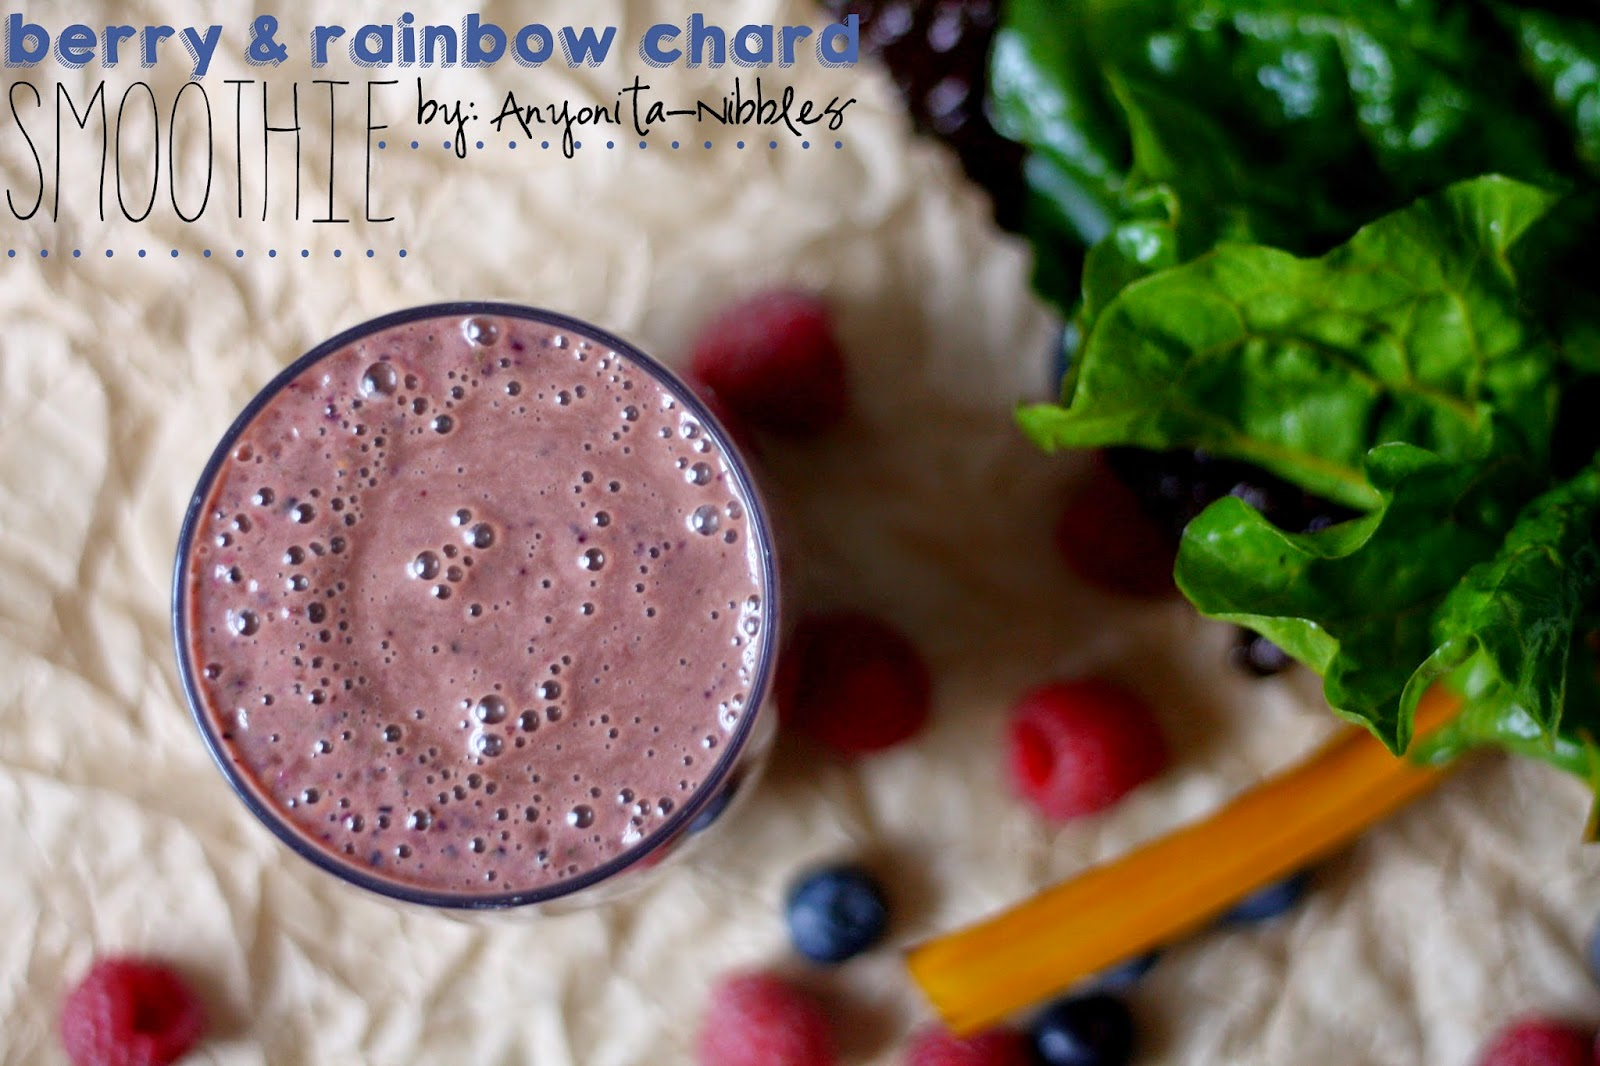 Smoothie with berries and Swiss chard from Anyonita-Nibbles.co.uk